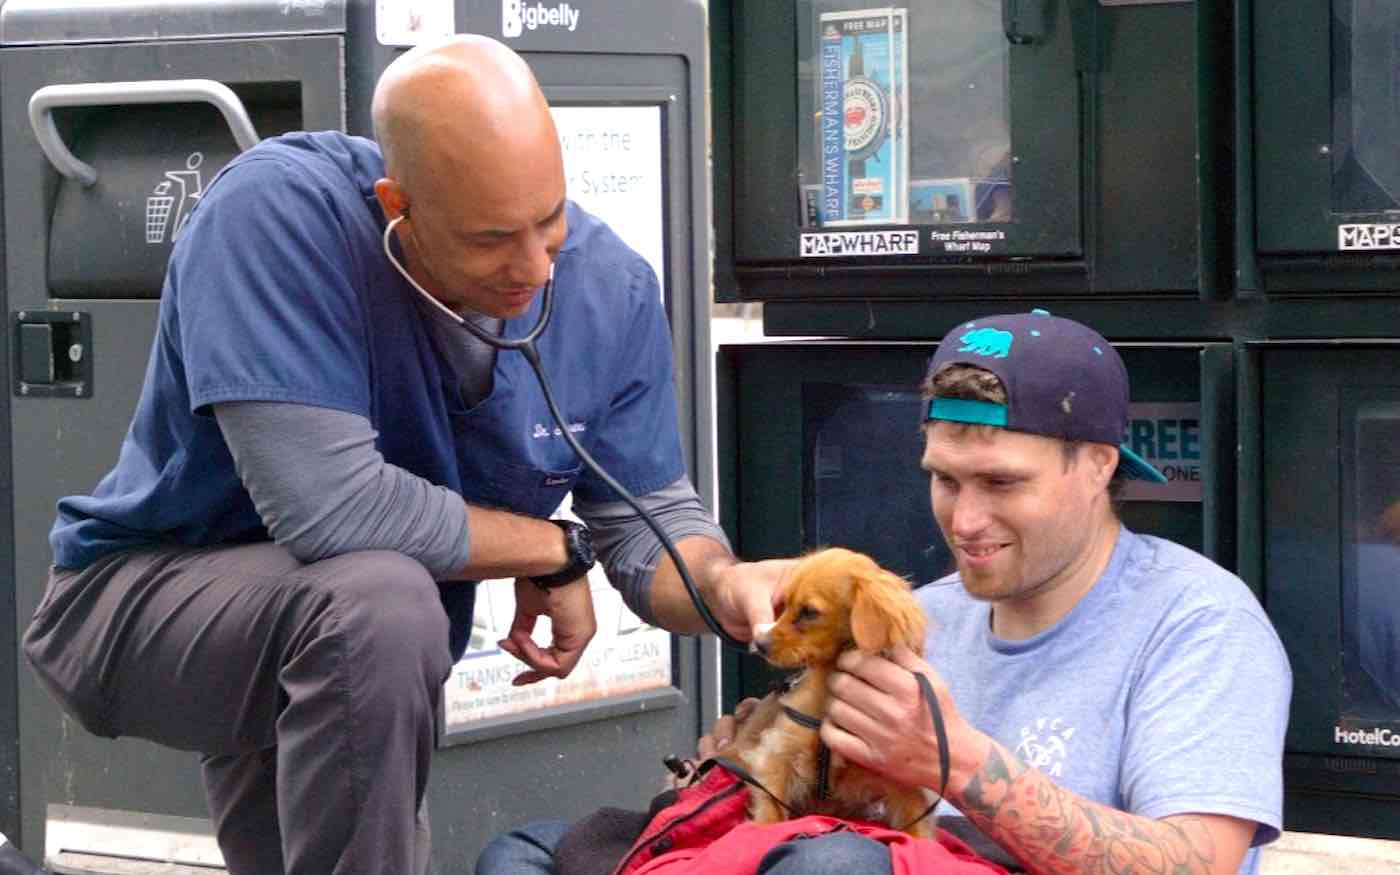 This Veterinarian Has Spent 9 Years Wandering the California Coast Treating Homeless People's Pets for Free